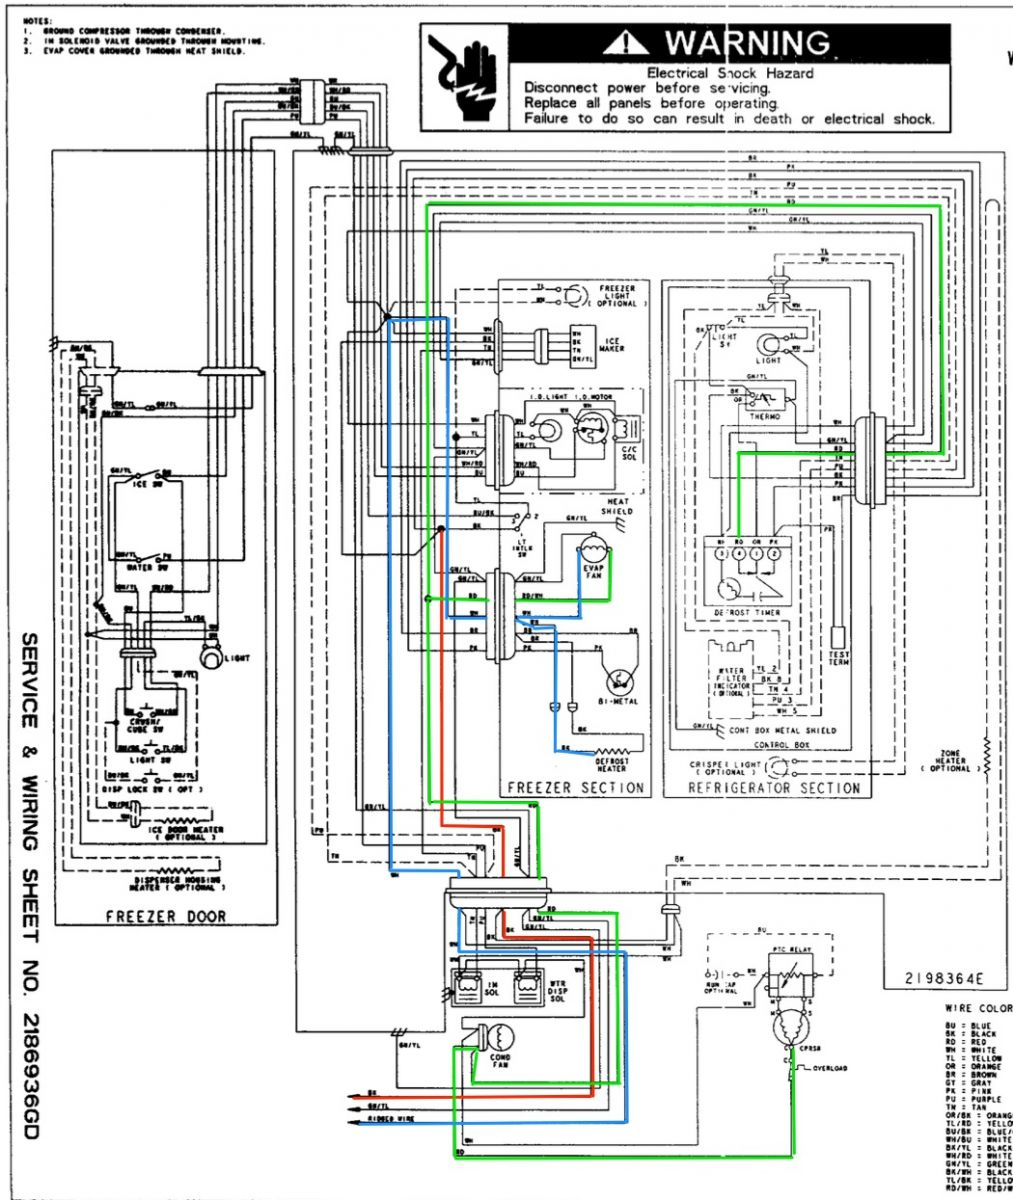 refrigerator wiring diagram wiring diagrams best whirlpool ed25rfxfw01 refrigerator wiring diagram the frigidaire oven diagram refrigerator wiring diagram